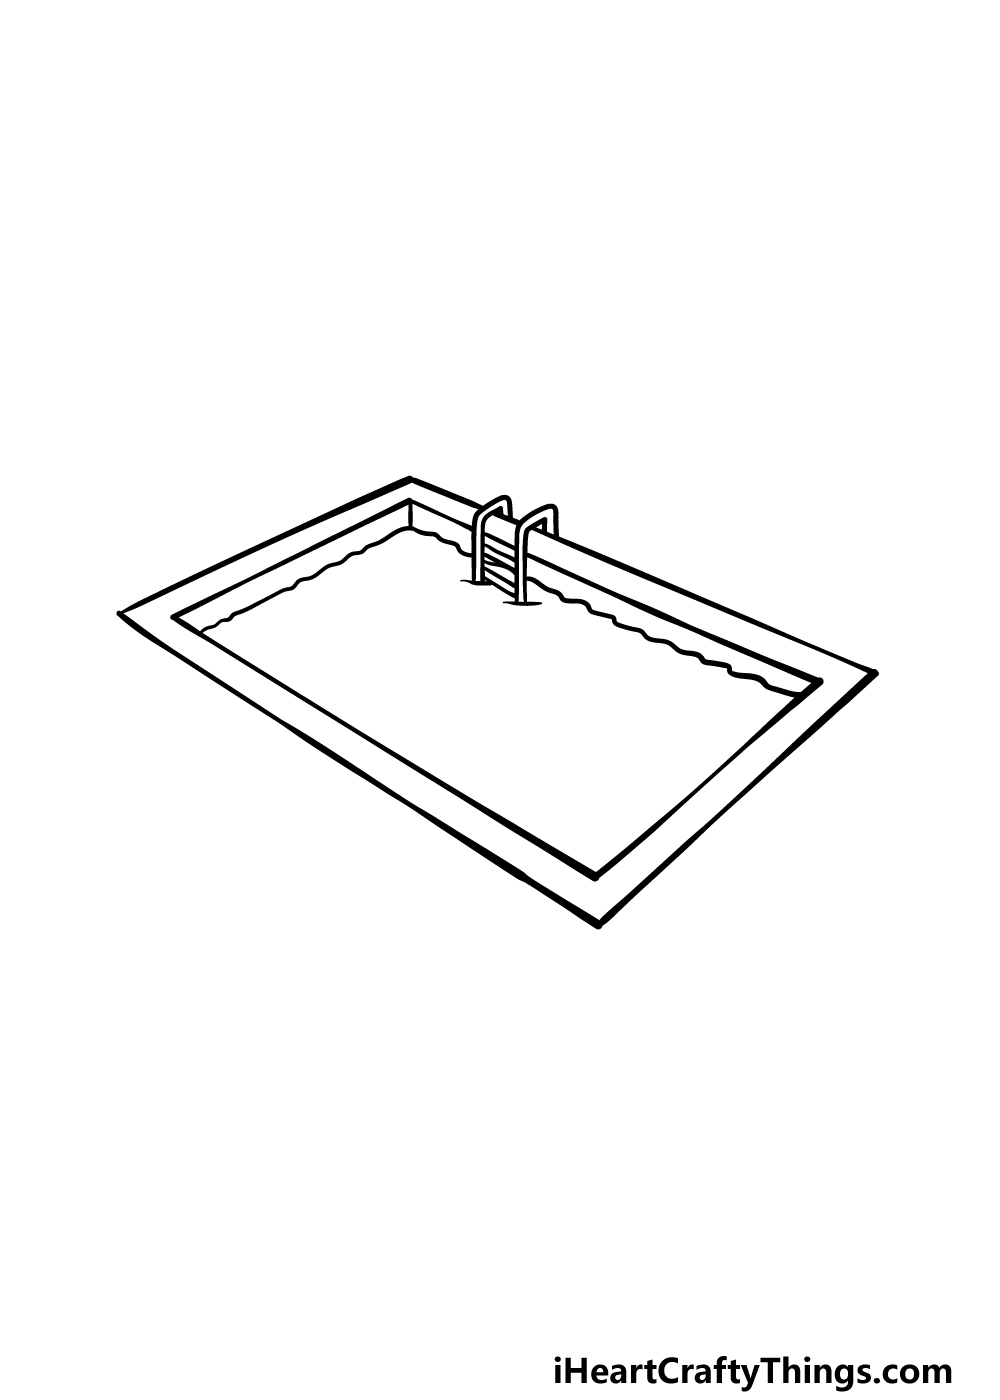 drawing a pool step 4